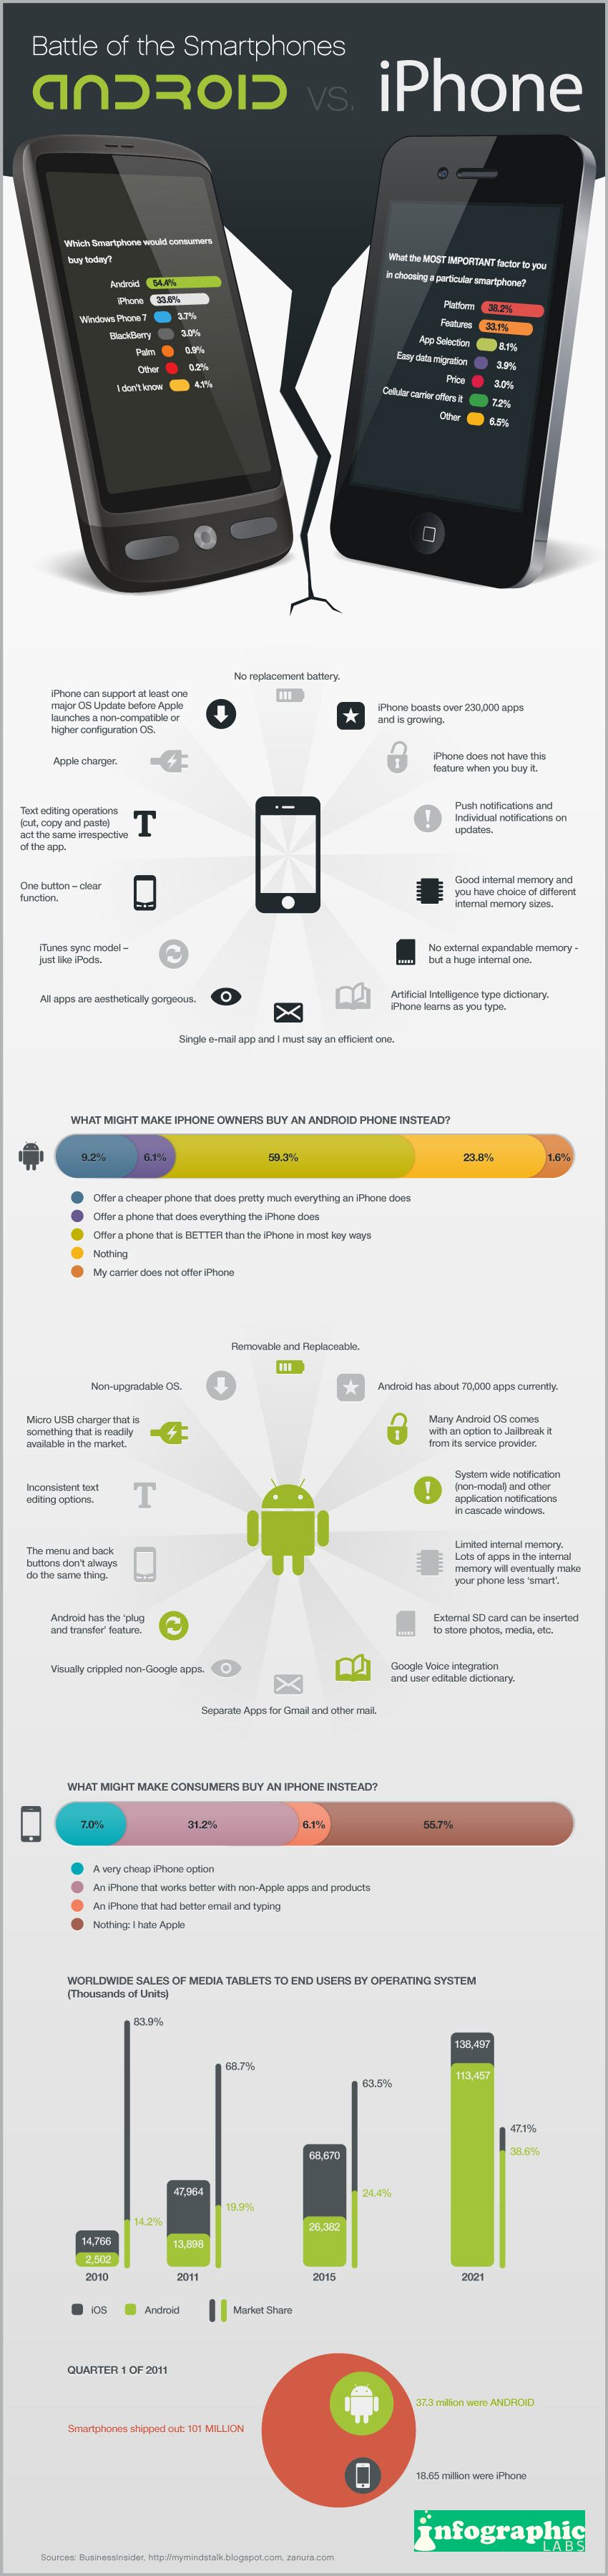 writing apps for android vs iphone